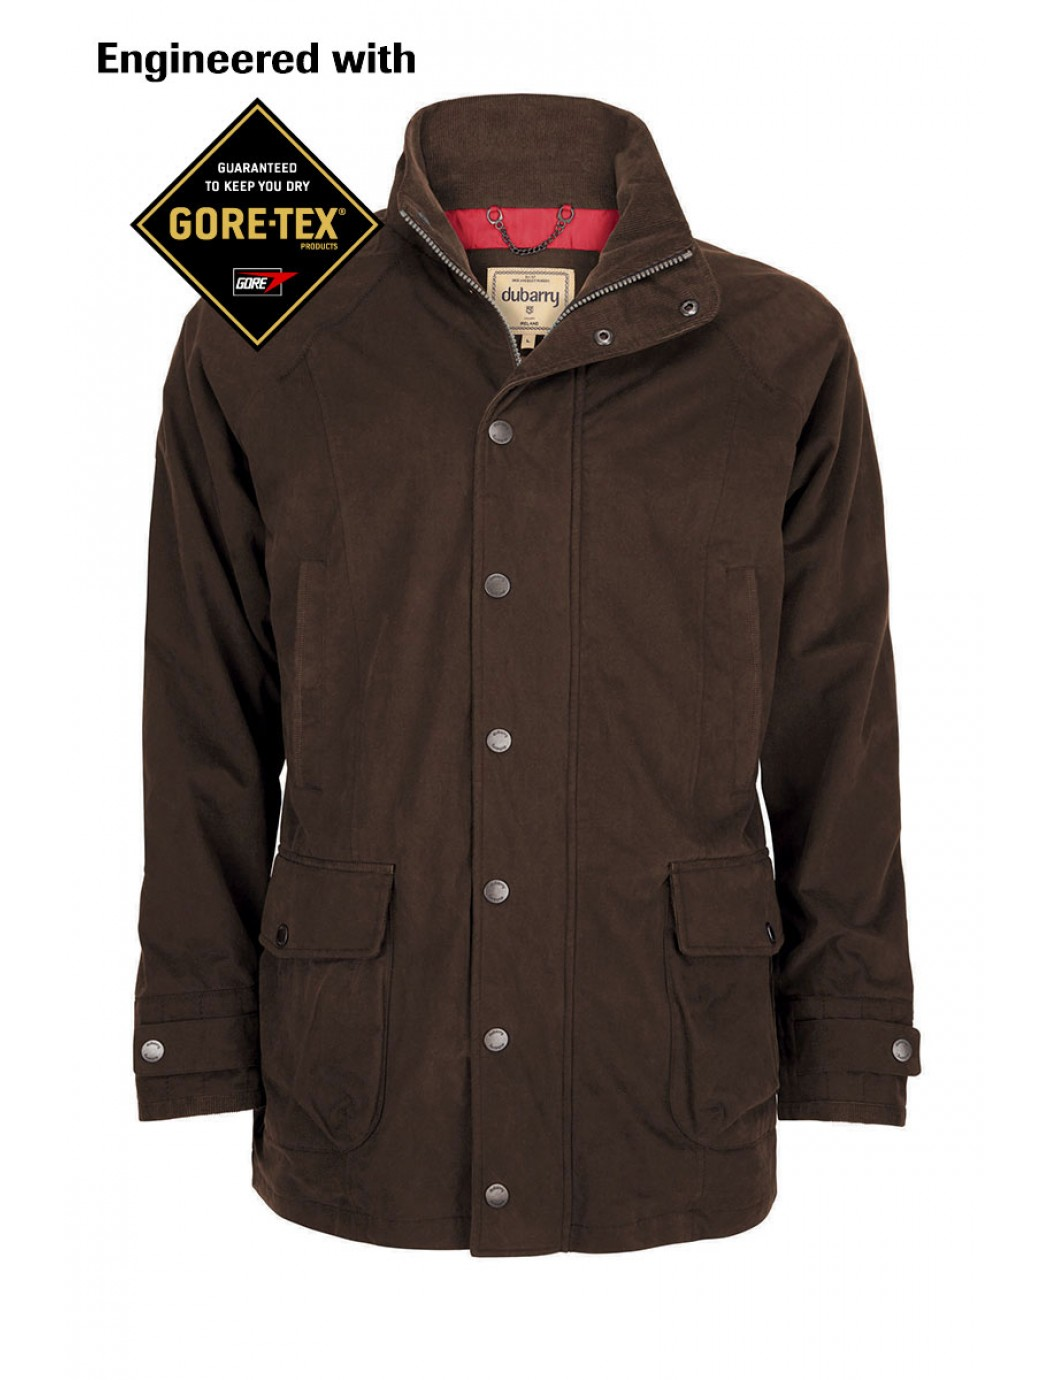 connell-mens-jackets-chocolate 1